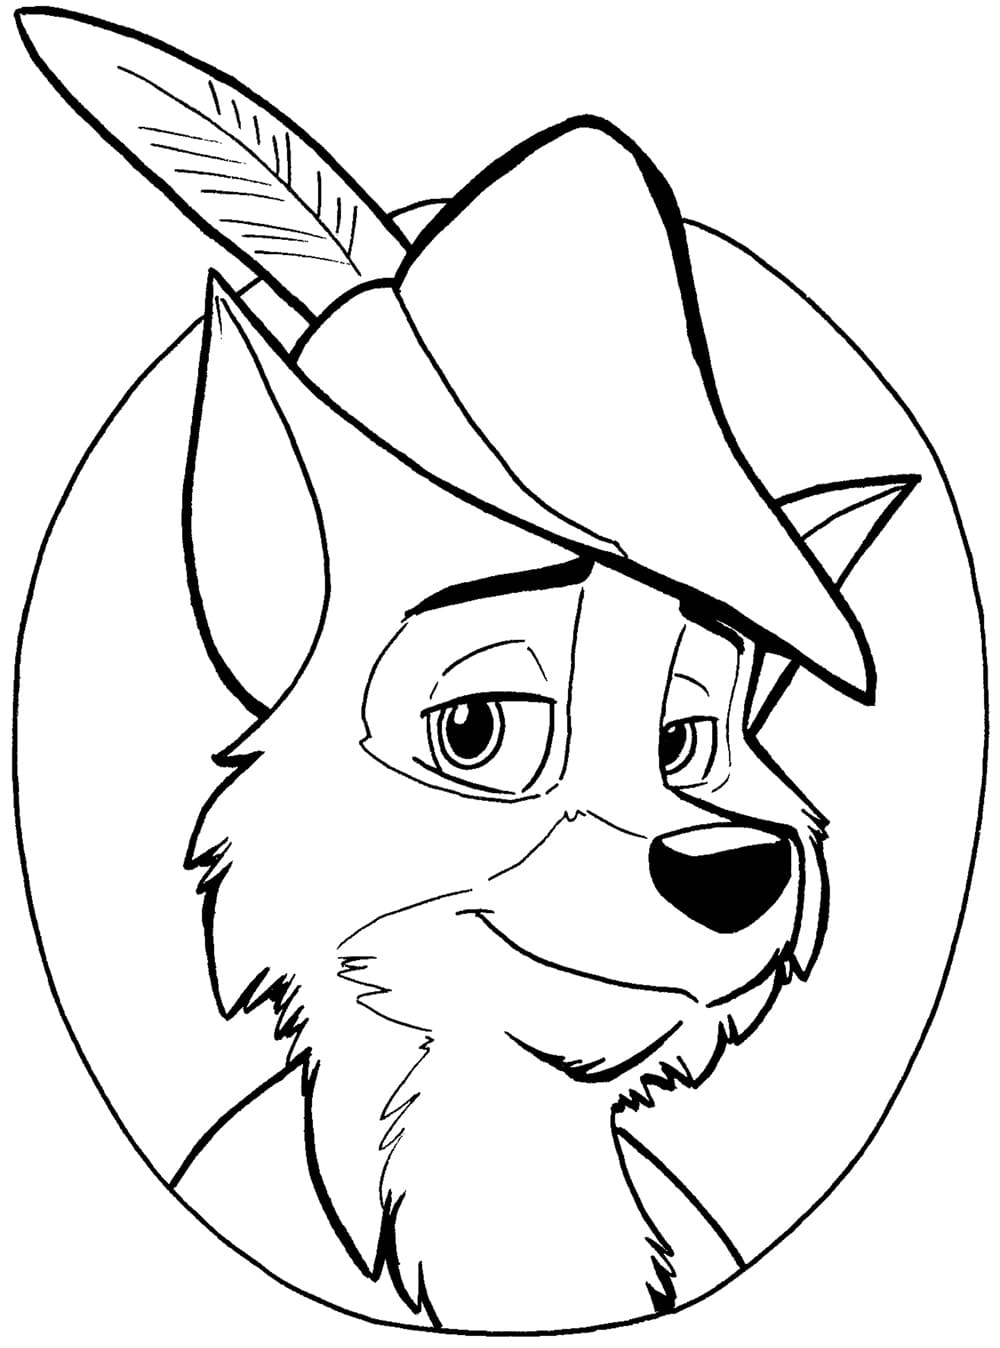 Robin Hood Coloring Pages Free Coloring Pages For Kids